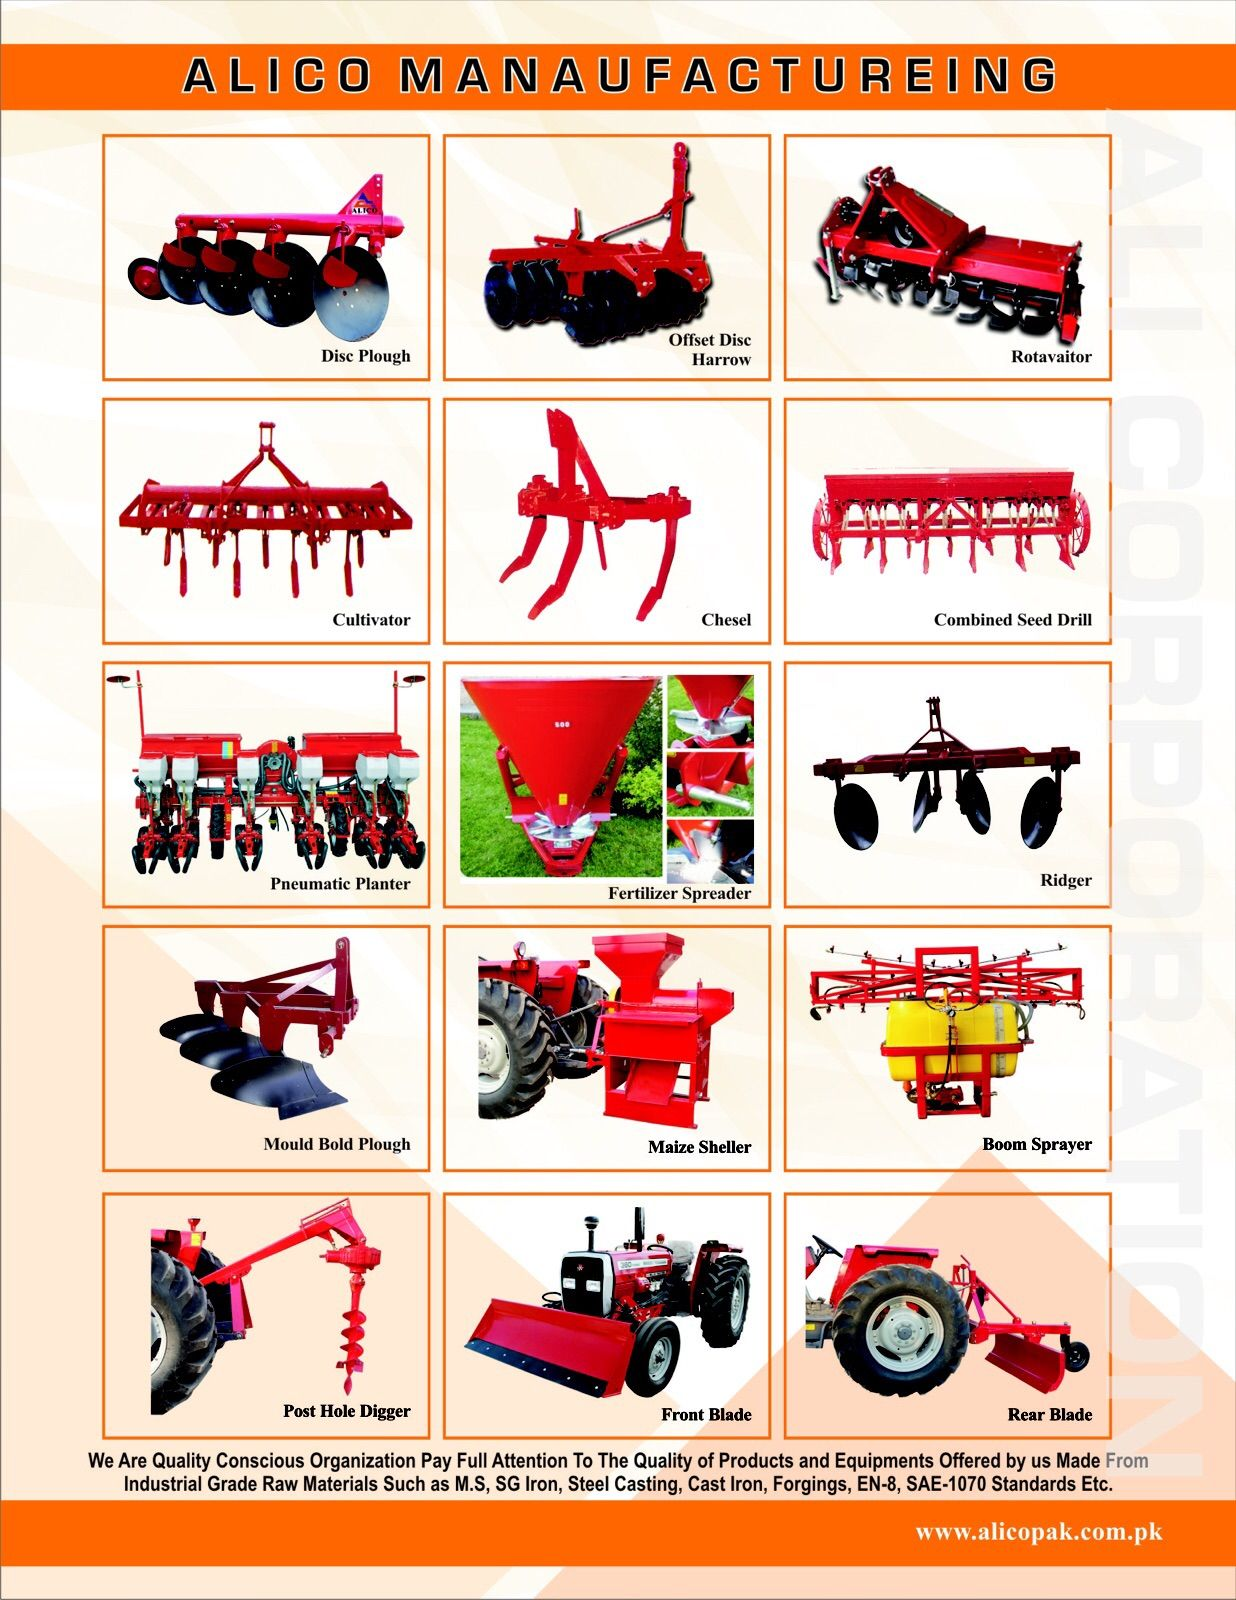 We manufactures all type of agriculture implements at low cost and